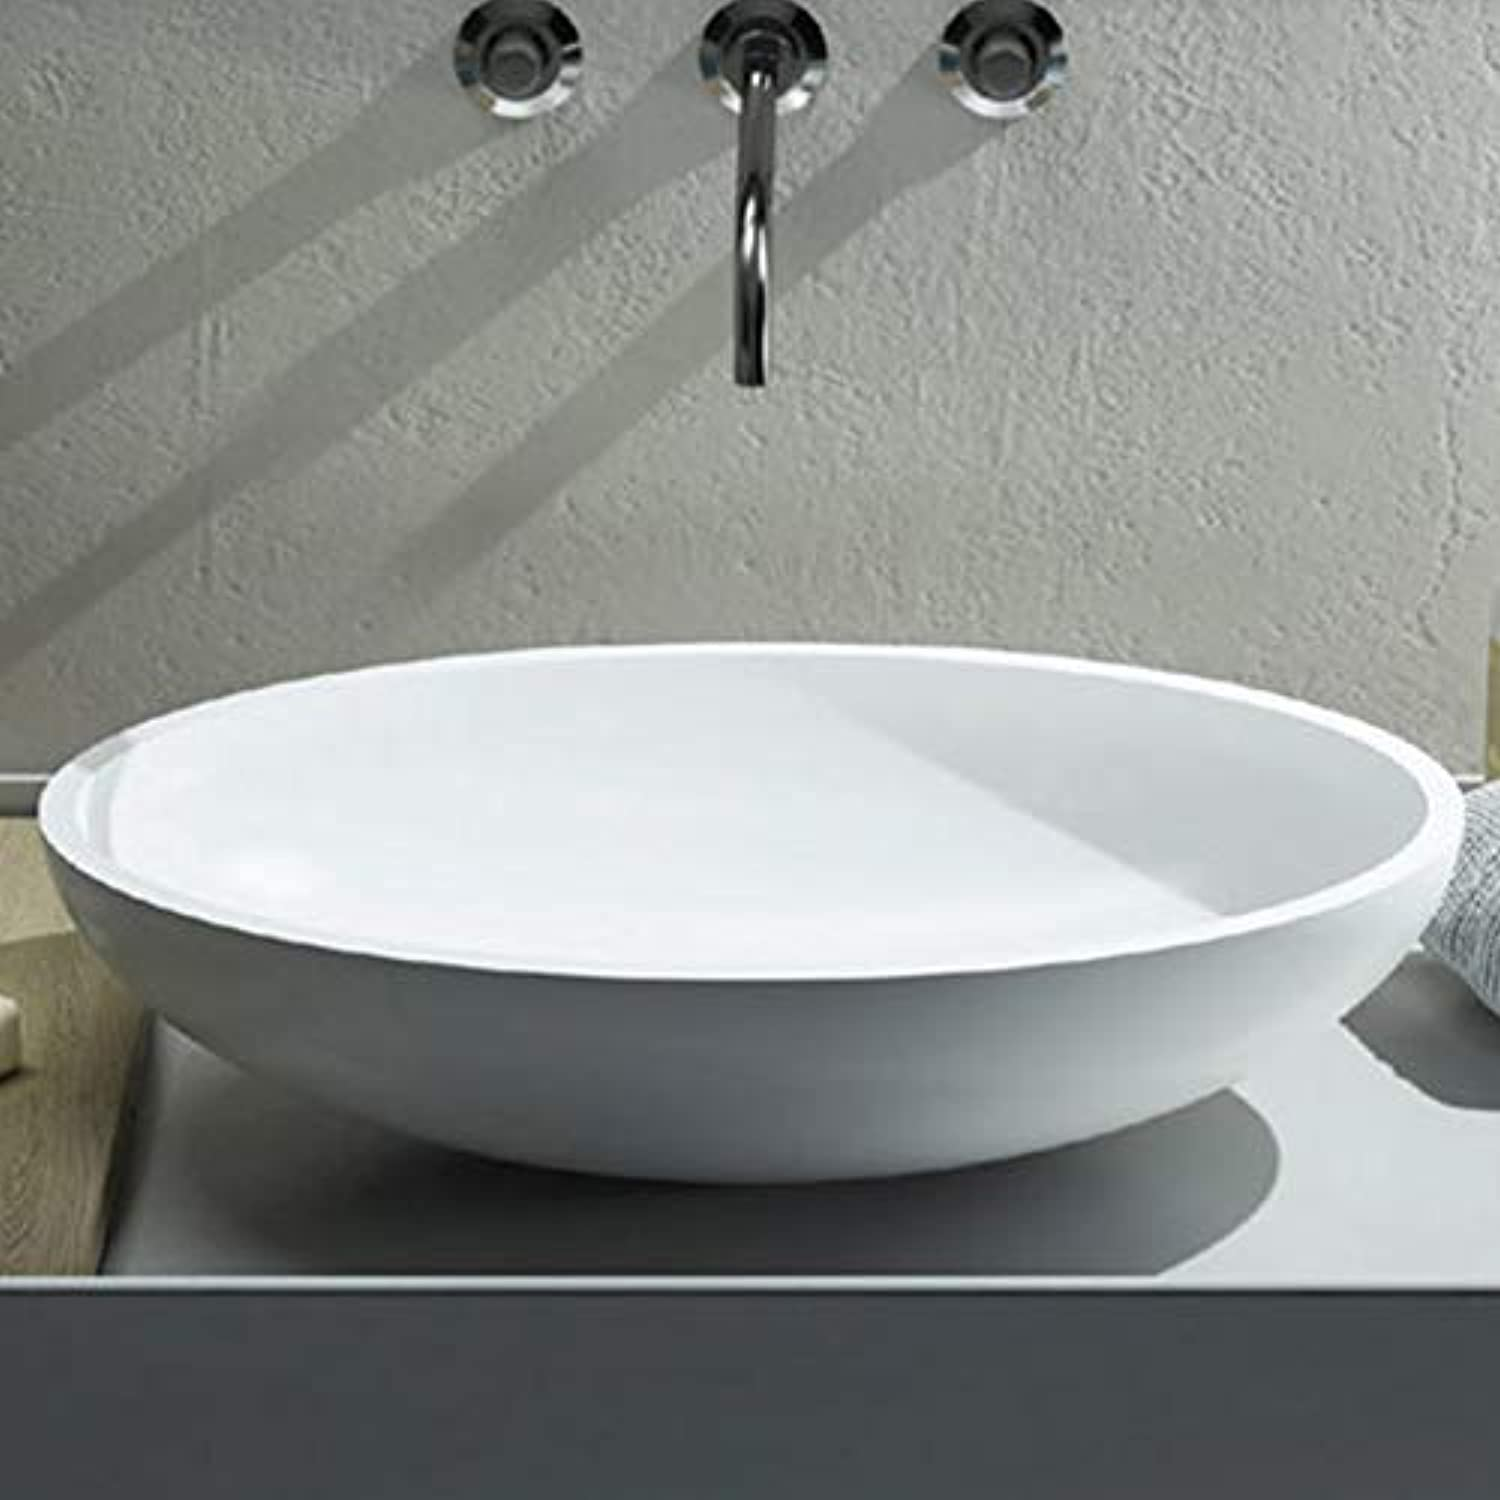 Cielo Eco 62 oval countertop sink BAECO-Polished Weiß